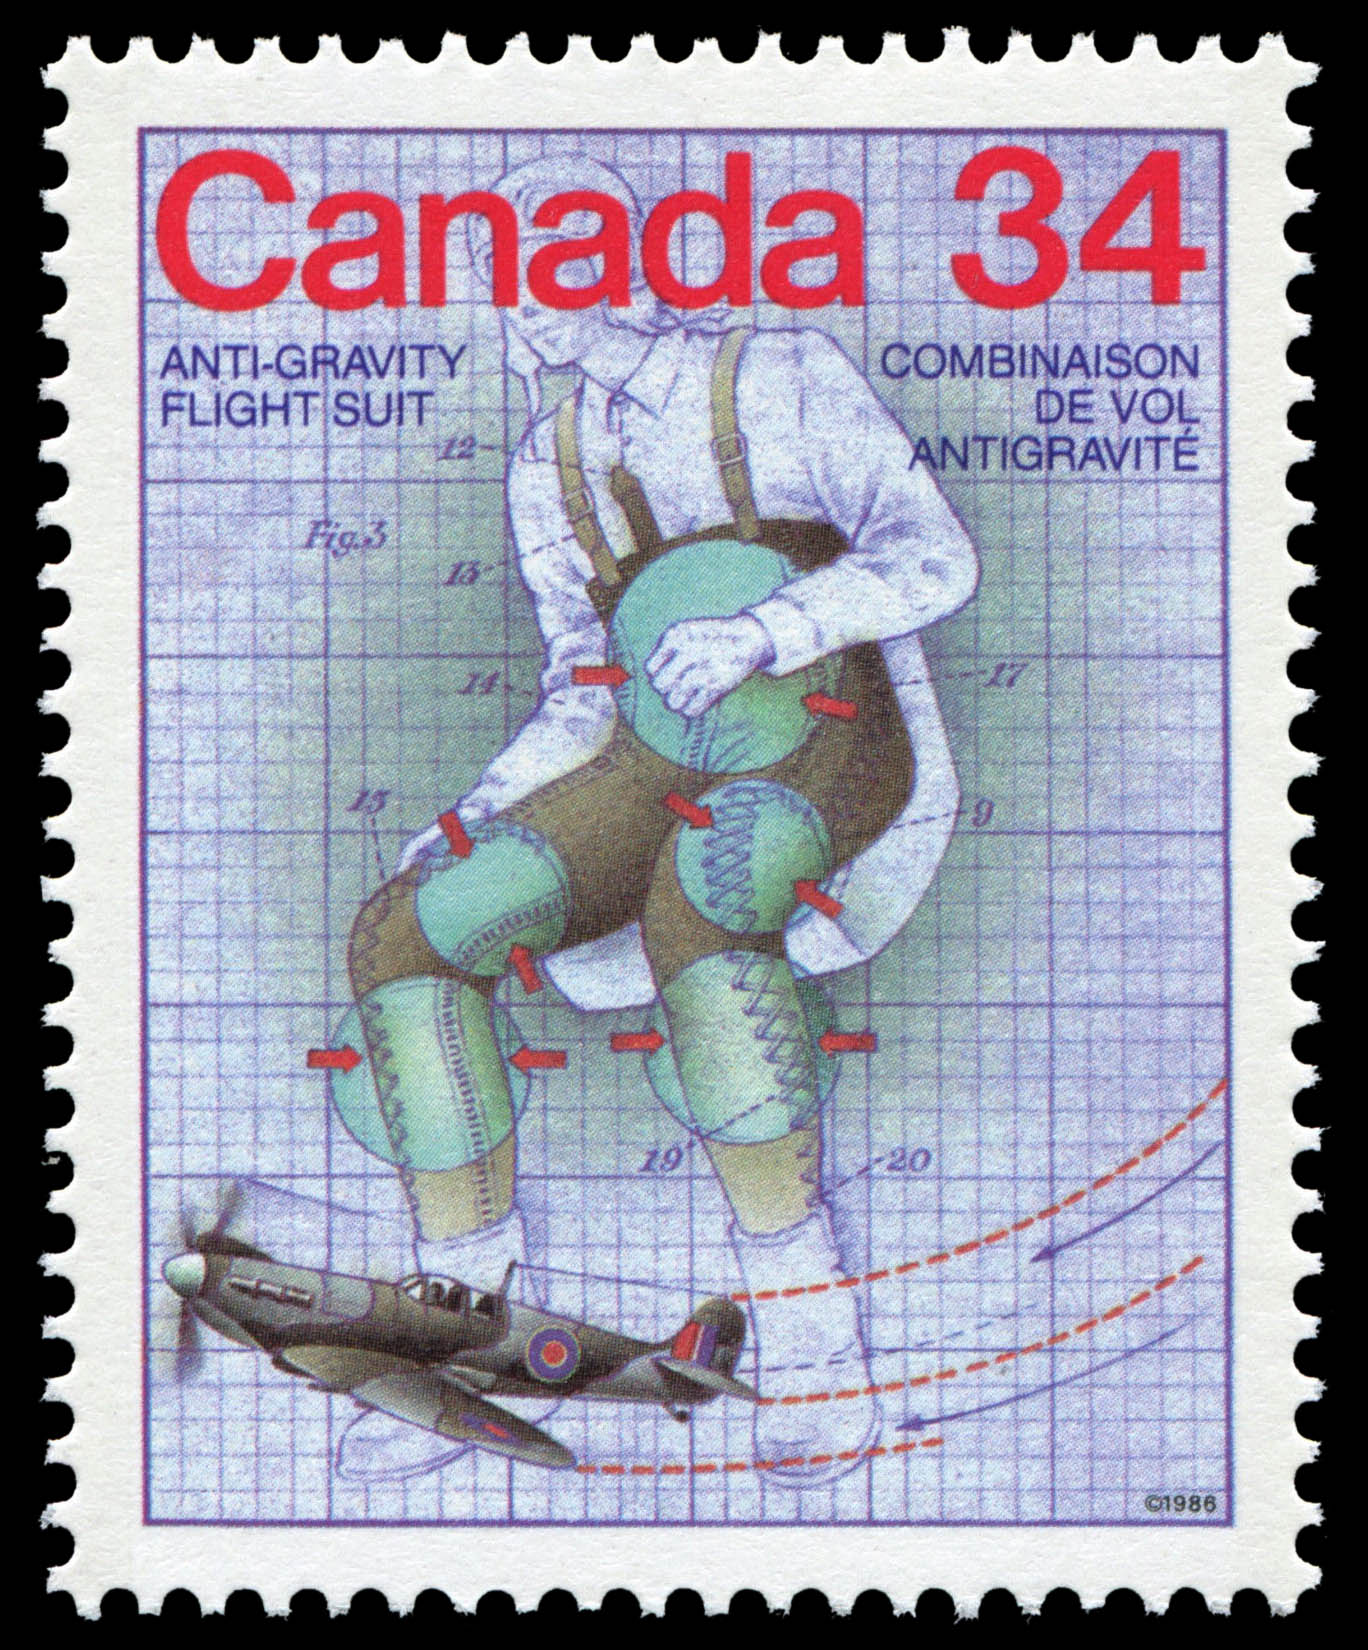 Anti-Gravity Flight Suit Canada Postage Stamp